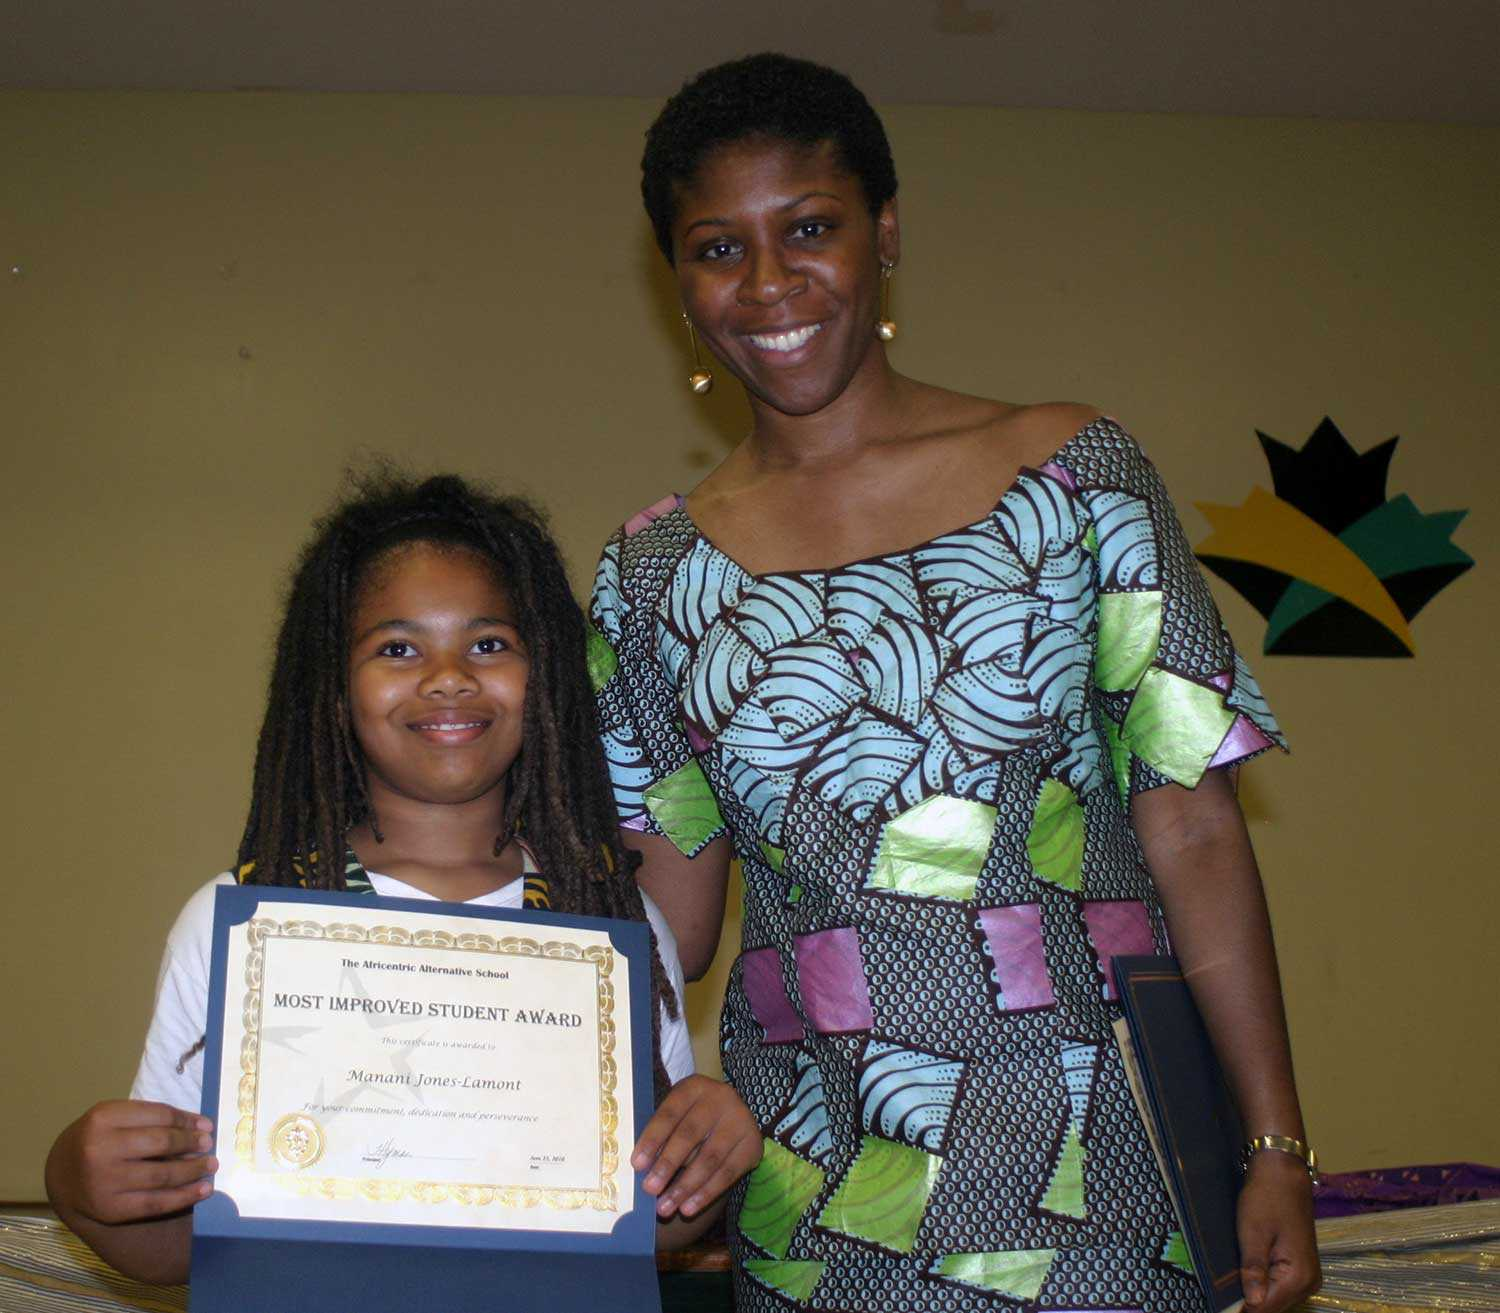 Former student Manani Jones (left) received the Most improved student award from Principal Hyman at the inaugural AAS gala in June 2010. Photo: Africentric Alternative School